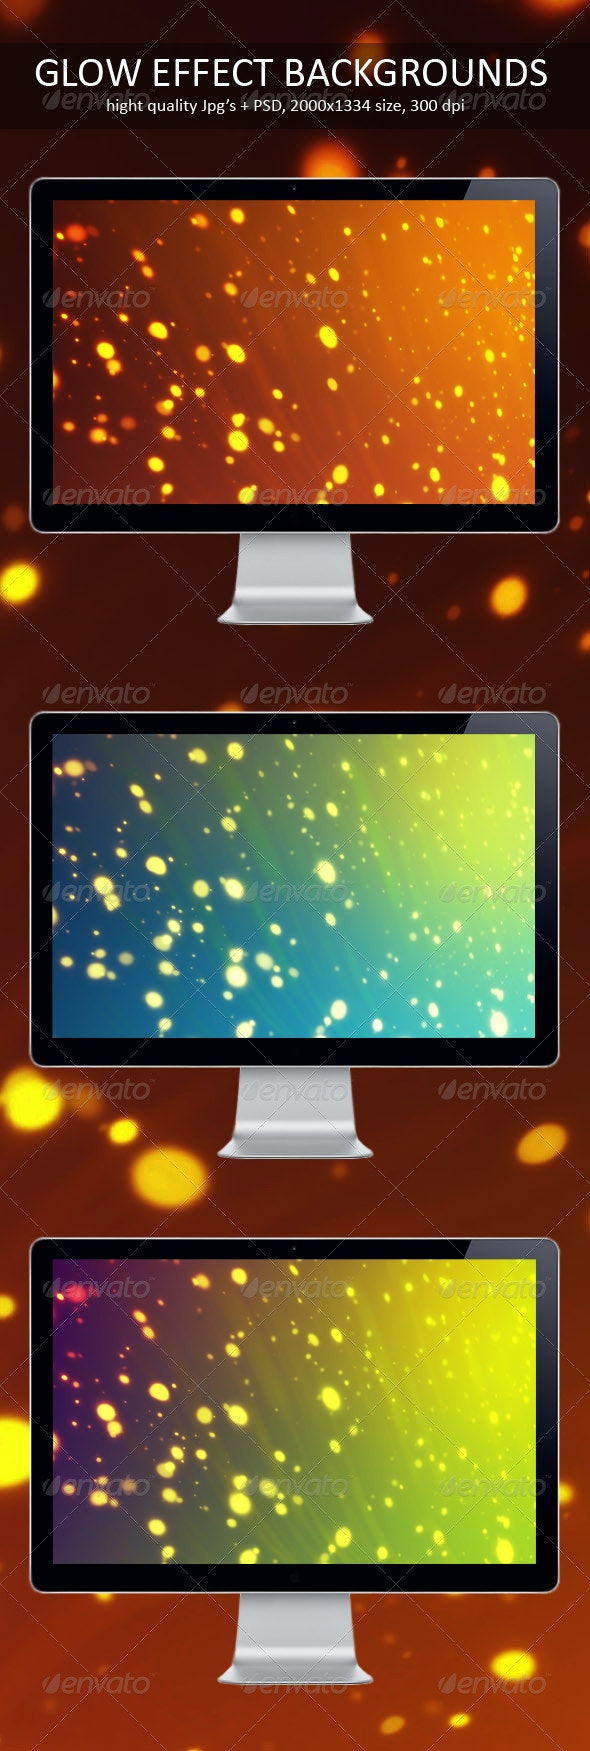 Glow Effect Backgrounds - Backgrounds Graphics